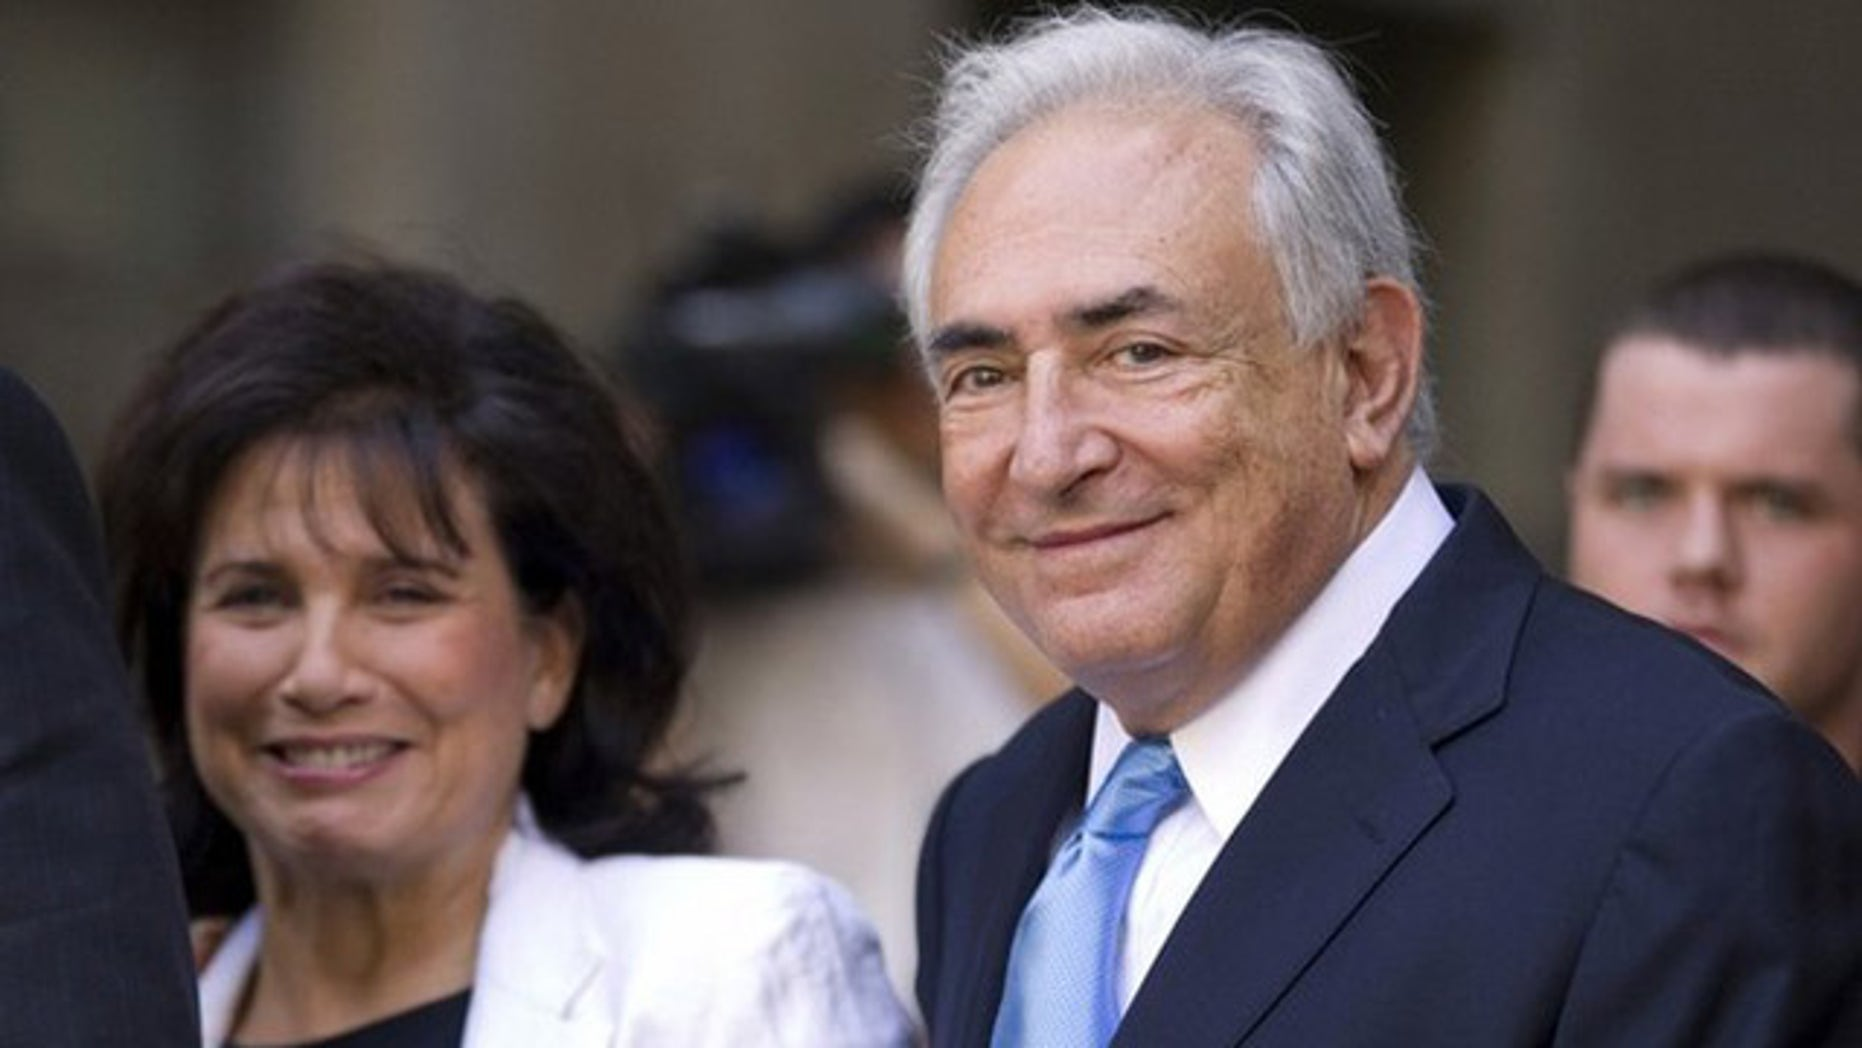 July 1: Former IMF chief Dominique Strauss-Kahn smiles as he and his wife Anne Sinclair depart a hearing at the New York State Supreme Courthouse in New York. Strauss-Kahn was released without bail on Friday after a dramatic court hearing where the sexual assault case against him appeared to shift in his favor.